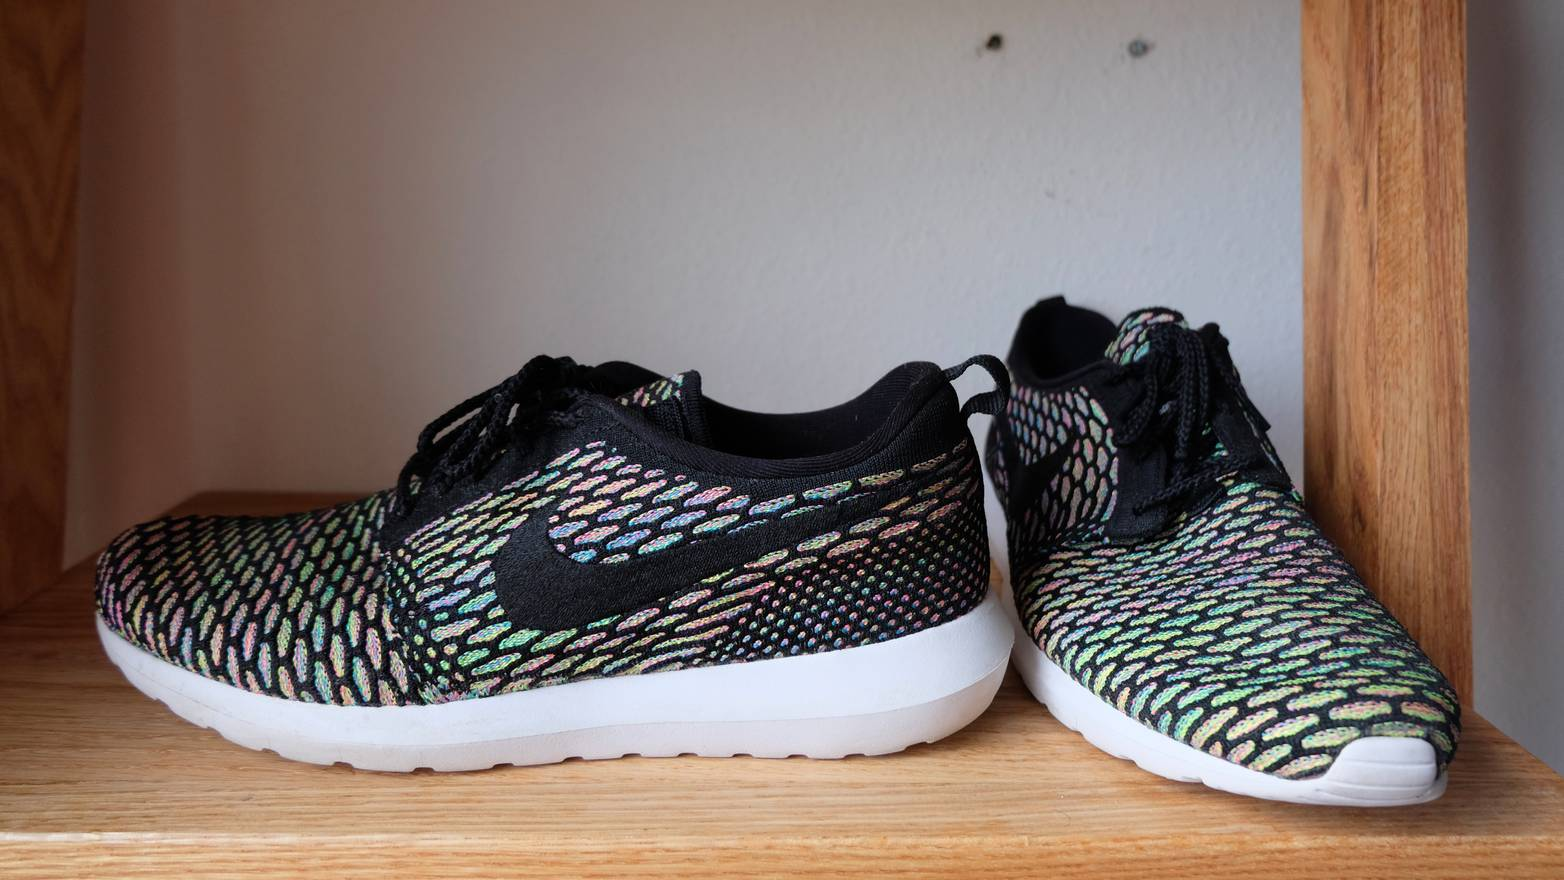 3a36a6dbe32a ... trainers 2f342 b158a  low price nike nike roshe run flyknit size us 12  eu 45 dd522 5633c